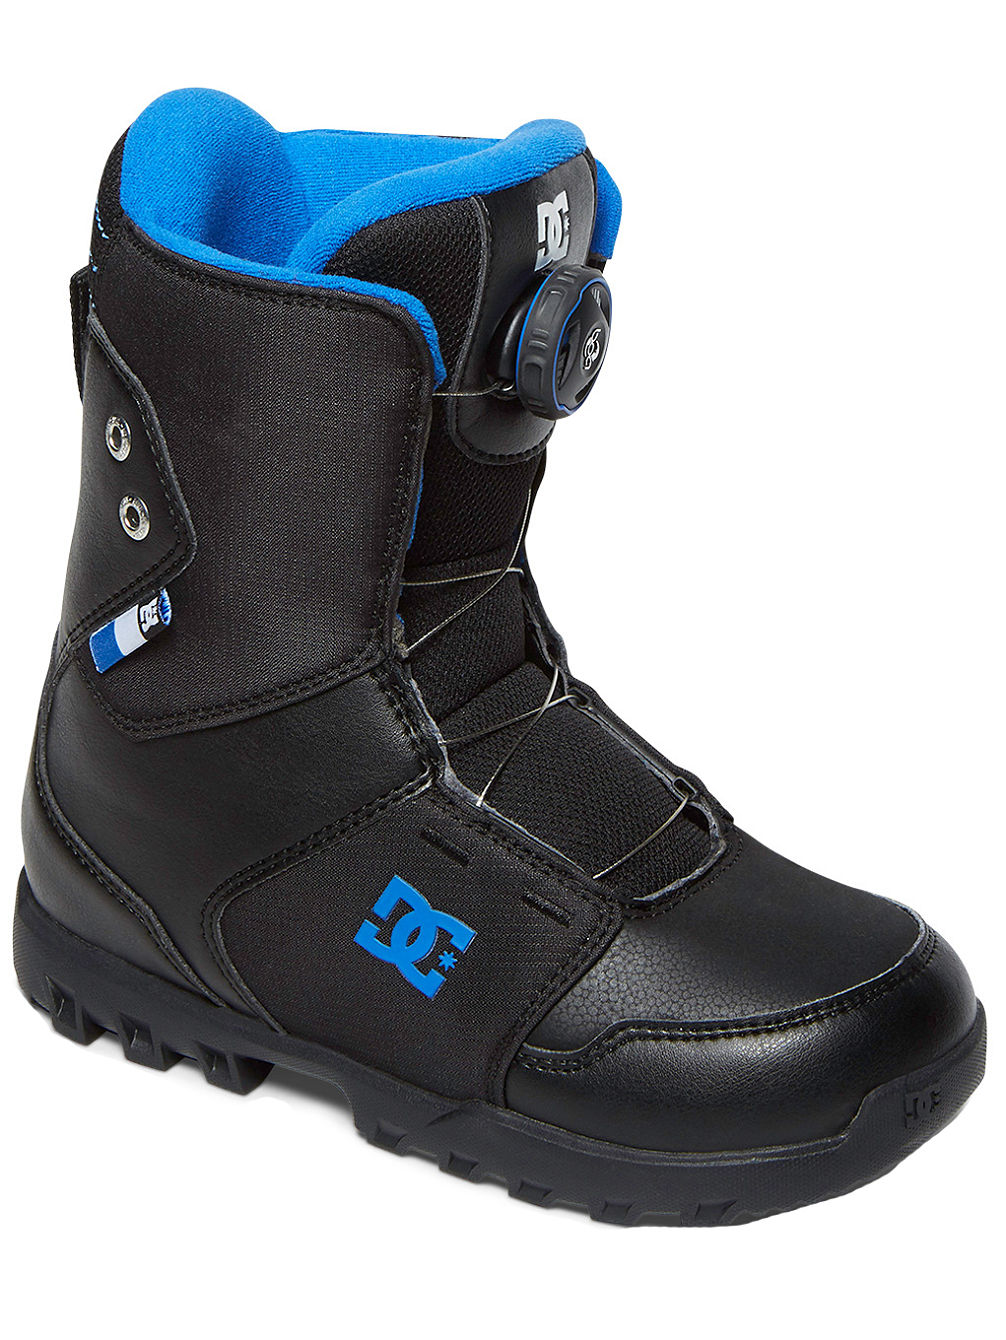 Scout 2018 Youth Botas snowboard